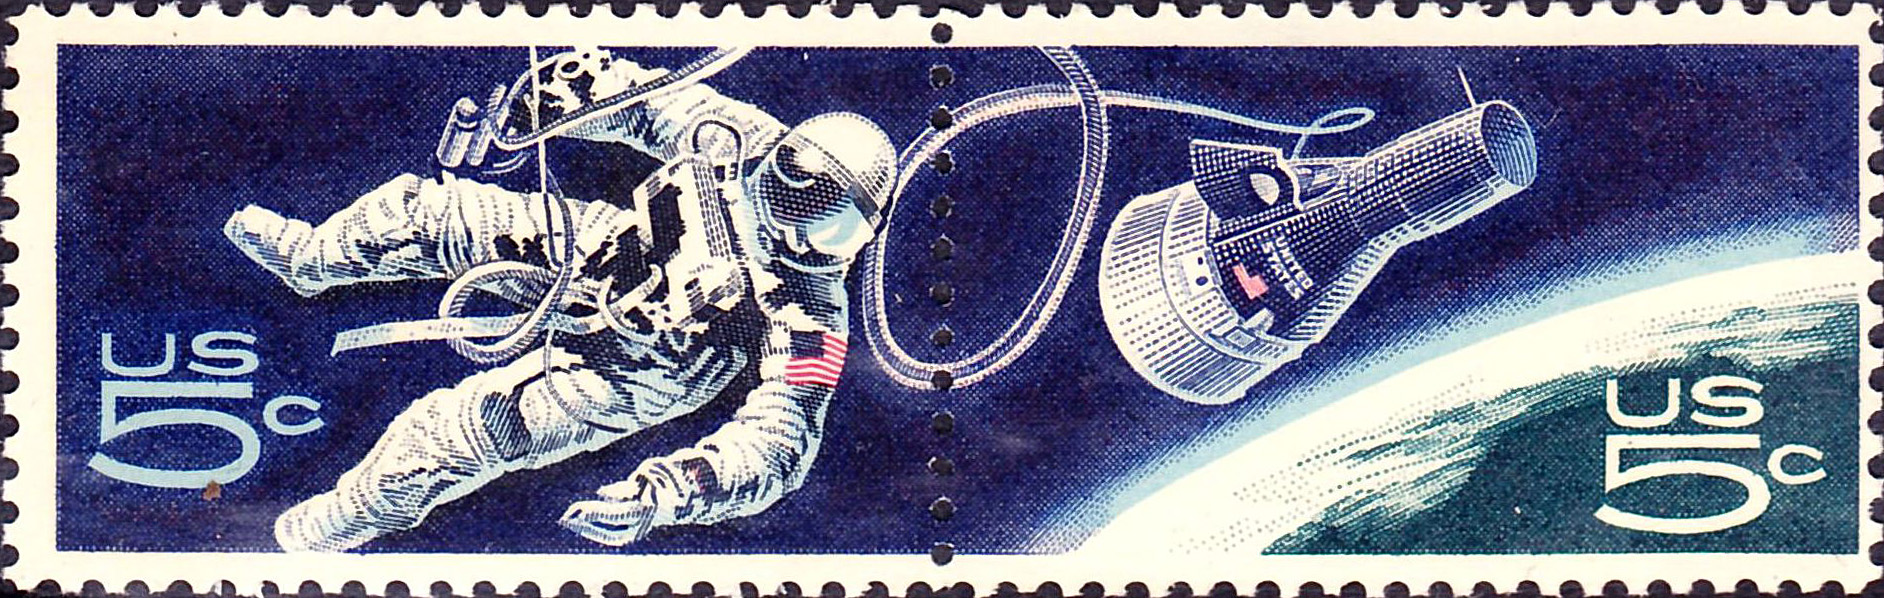 the first space shuttle on moon stamp - photo #29